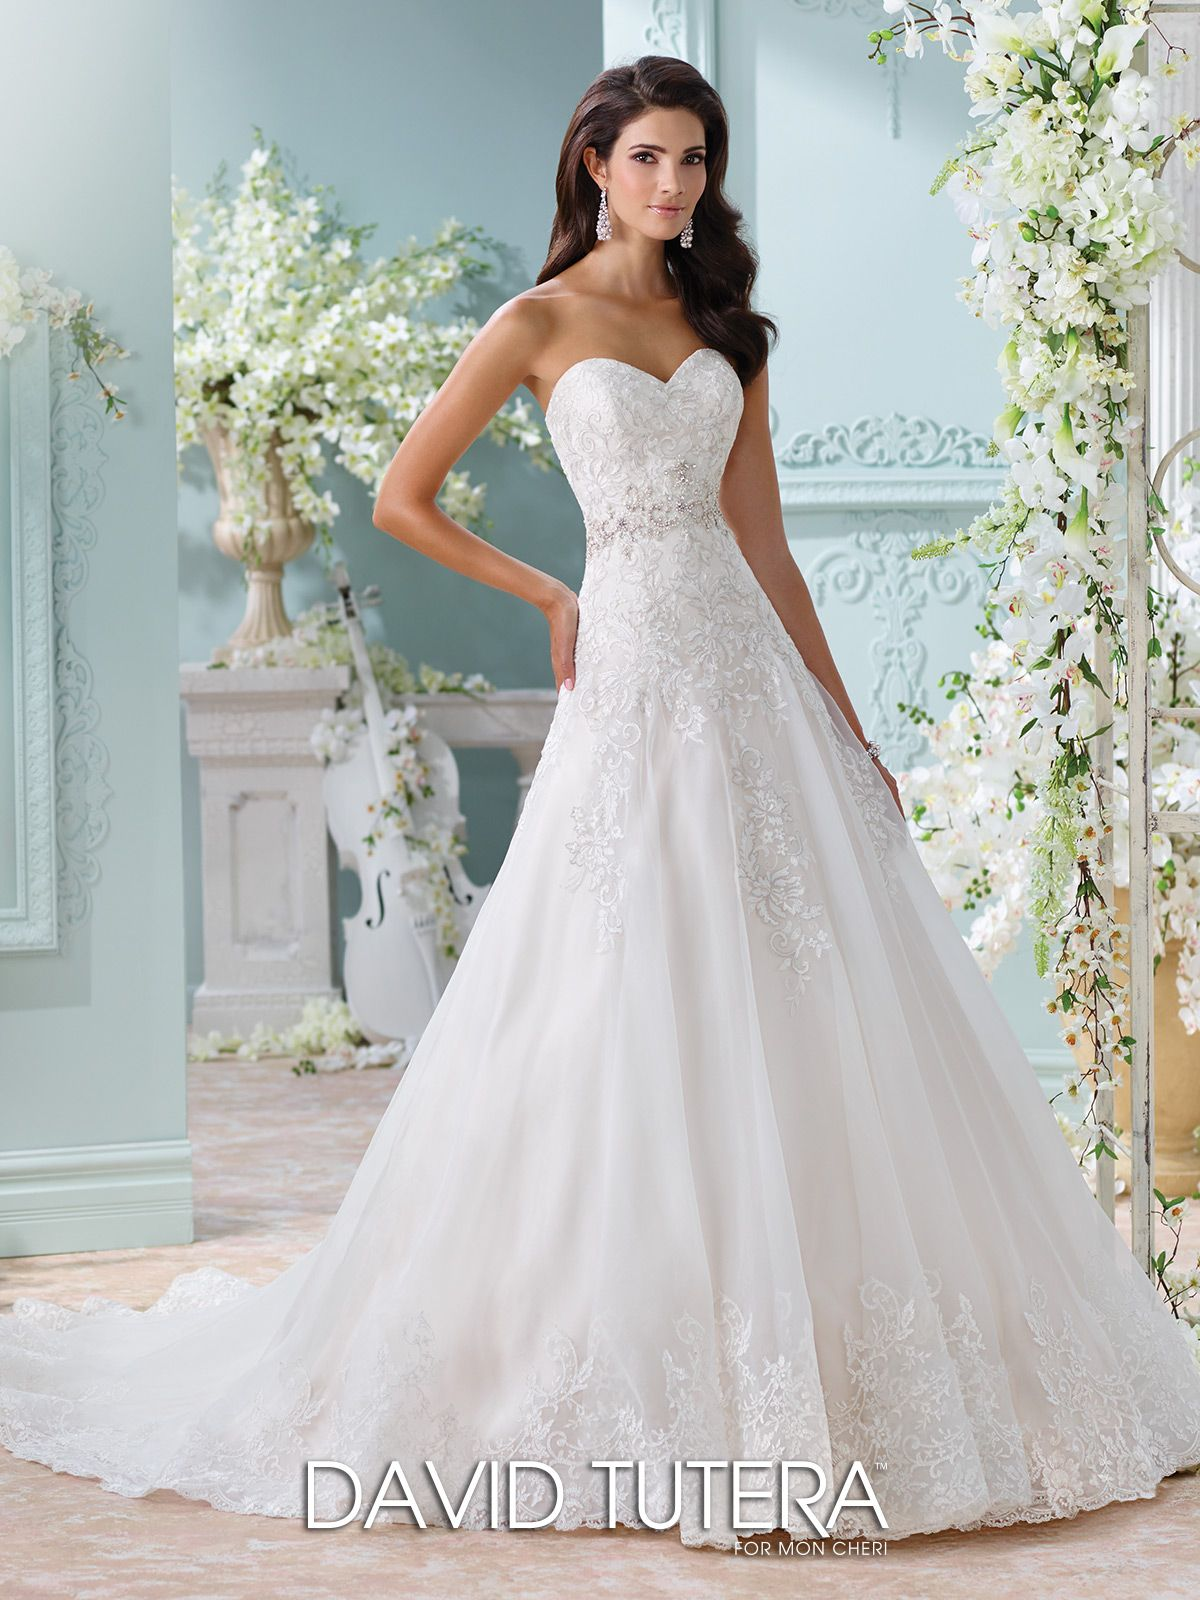 Robust Lace Aline Wedding Dressfrom Spring 2016 David Tutera Mon Cheri Click Wedding Dresses Spring 2018 Martin Thornburg Strapless Style Is A Strapless Organza